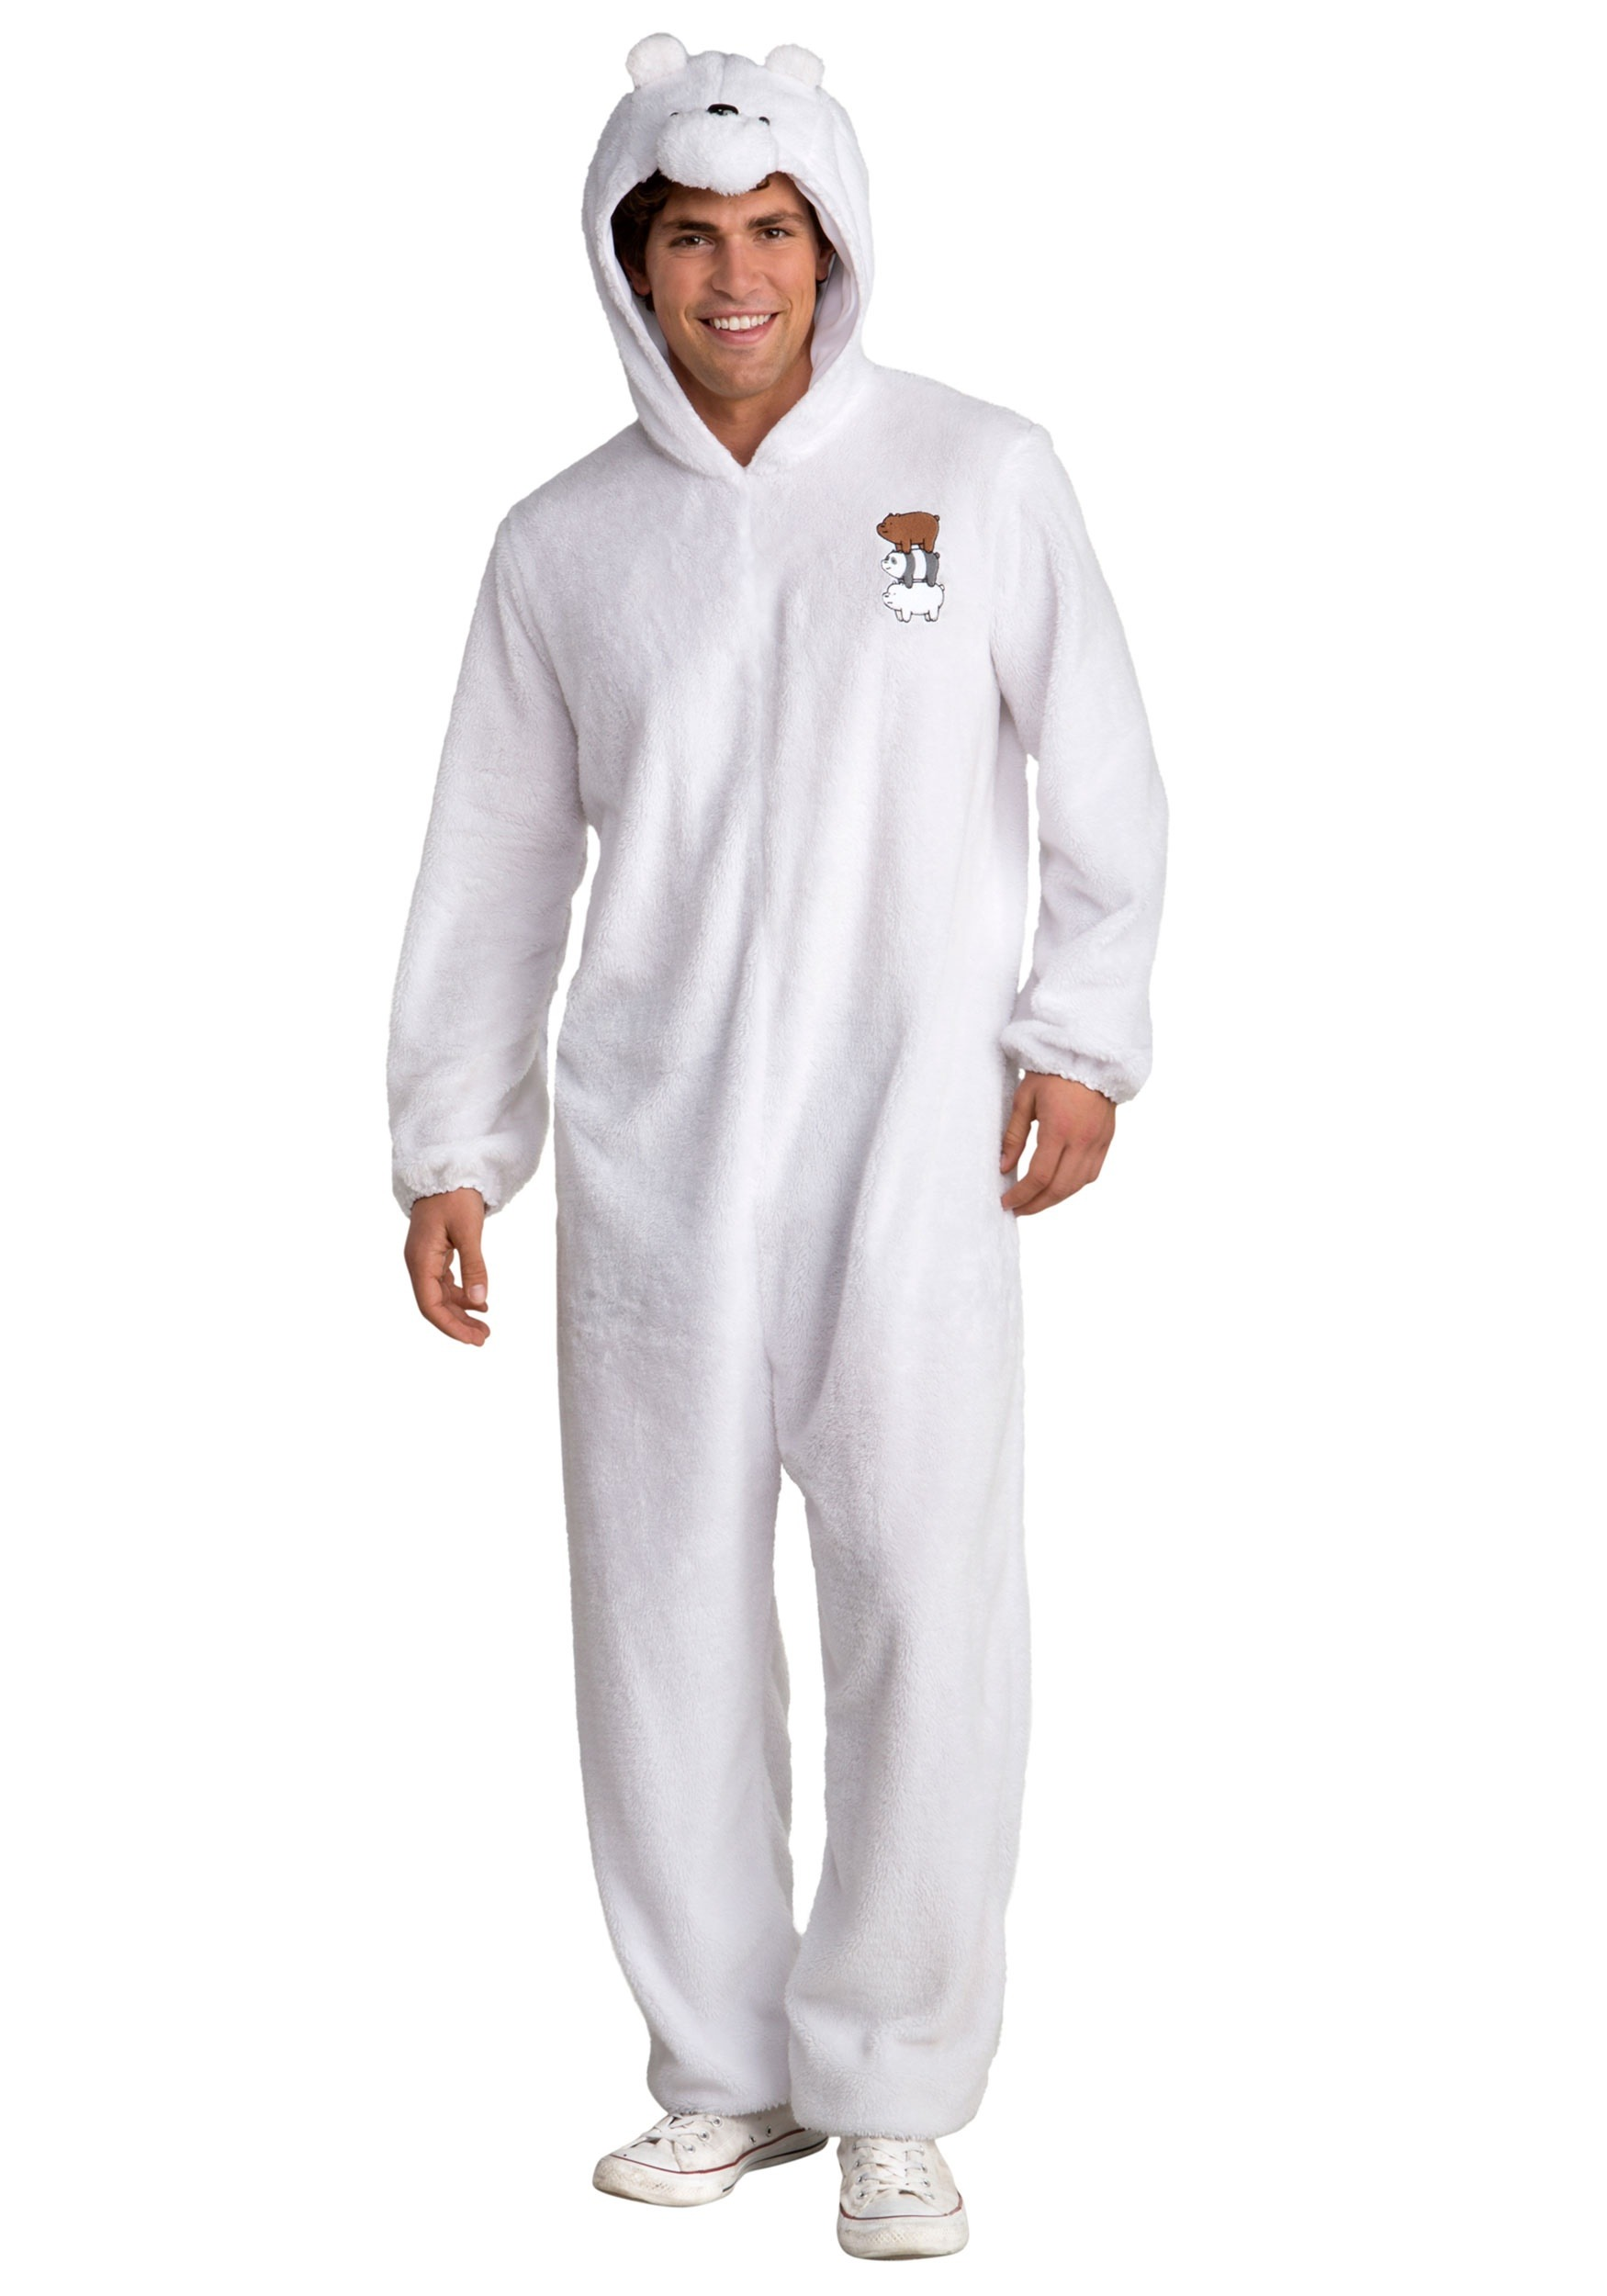 INOpets.com Anything for Pets Parents & Their Pets We Bare Bears Ice Bear Fancy Dress Costume for Men